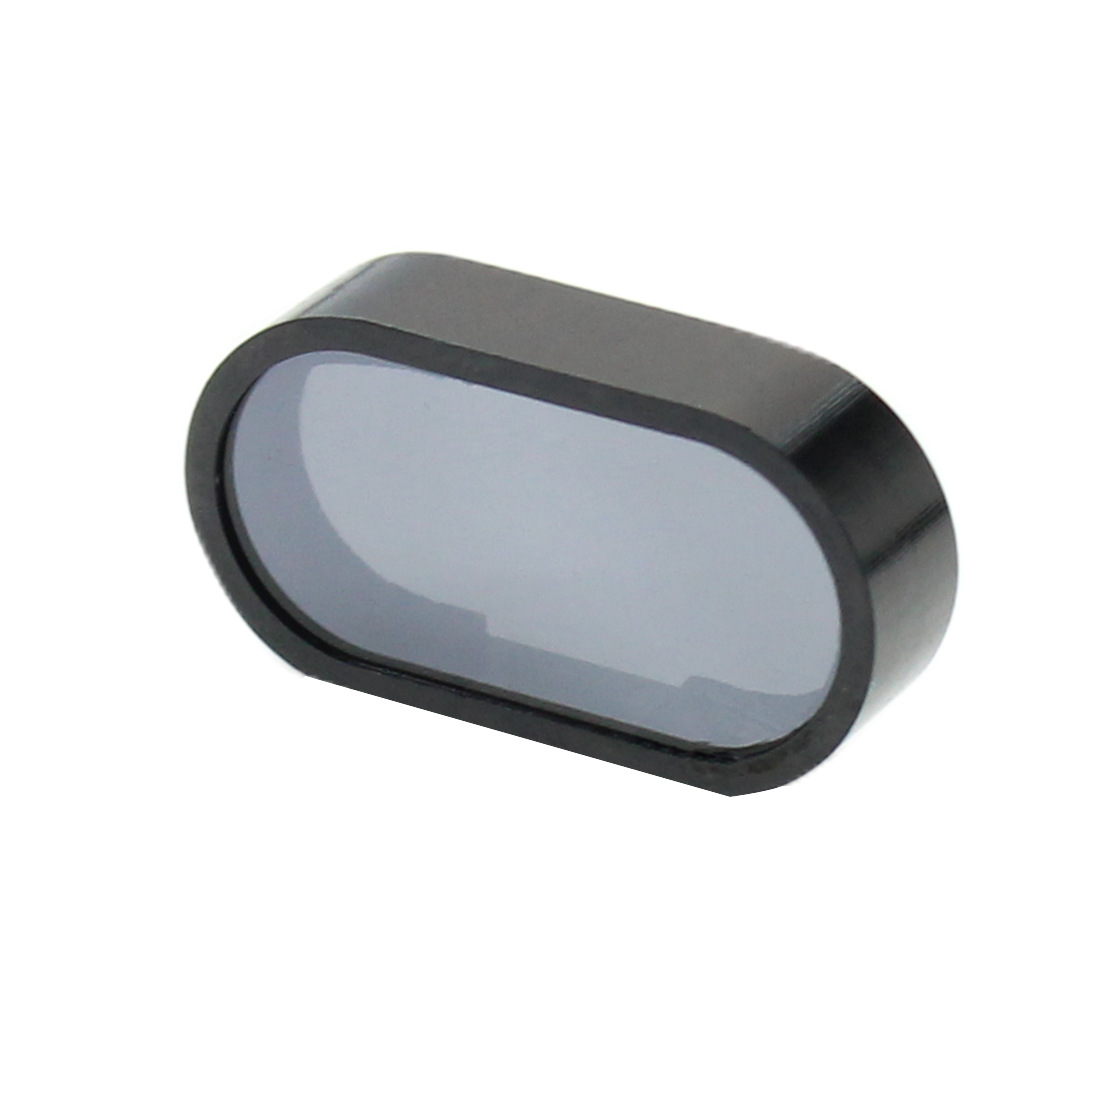 Caddx Tarsier ND8 Filter UV Lens Camera Accessories for Dual Spare Parts Suitable Cloudy Flight